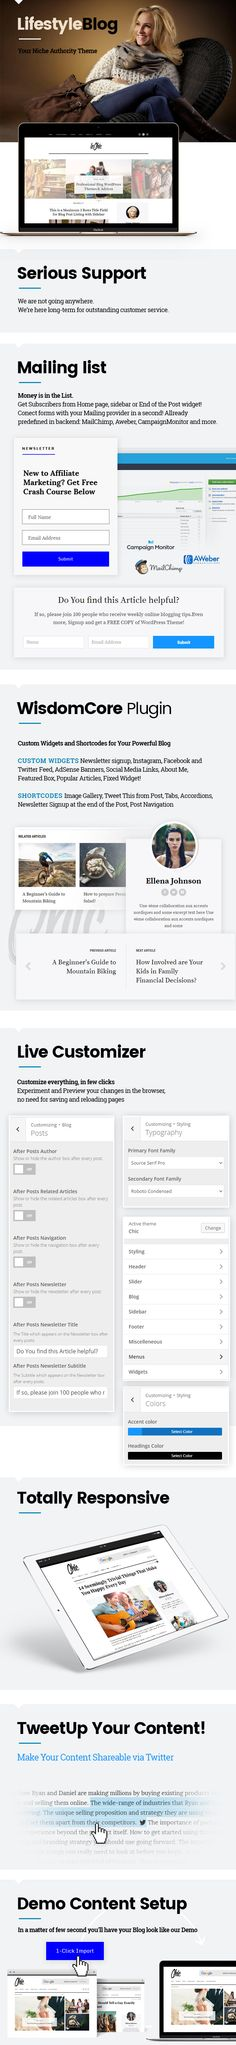 pine script mobile module nulled graphics